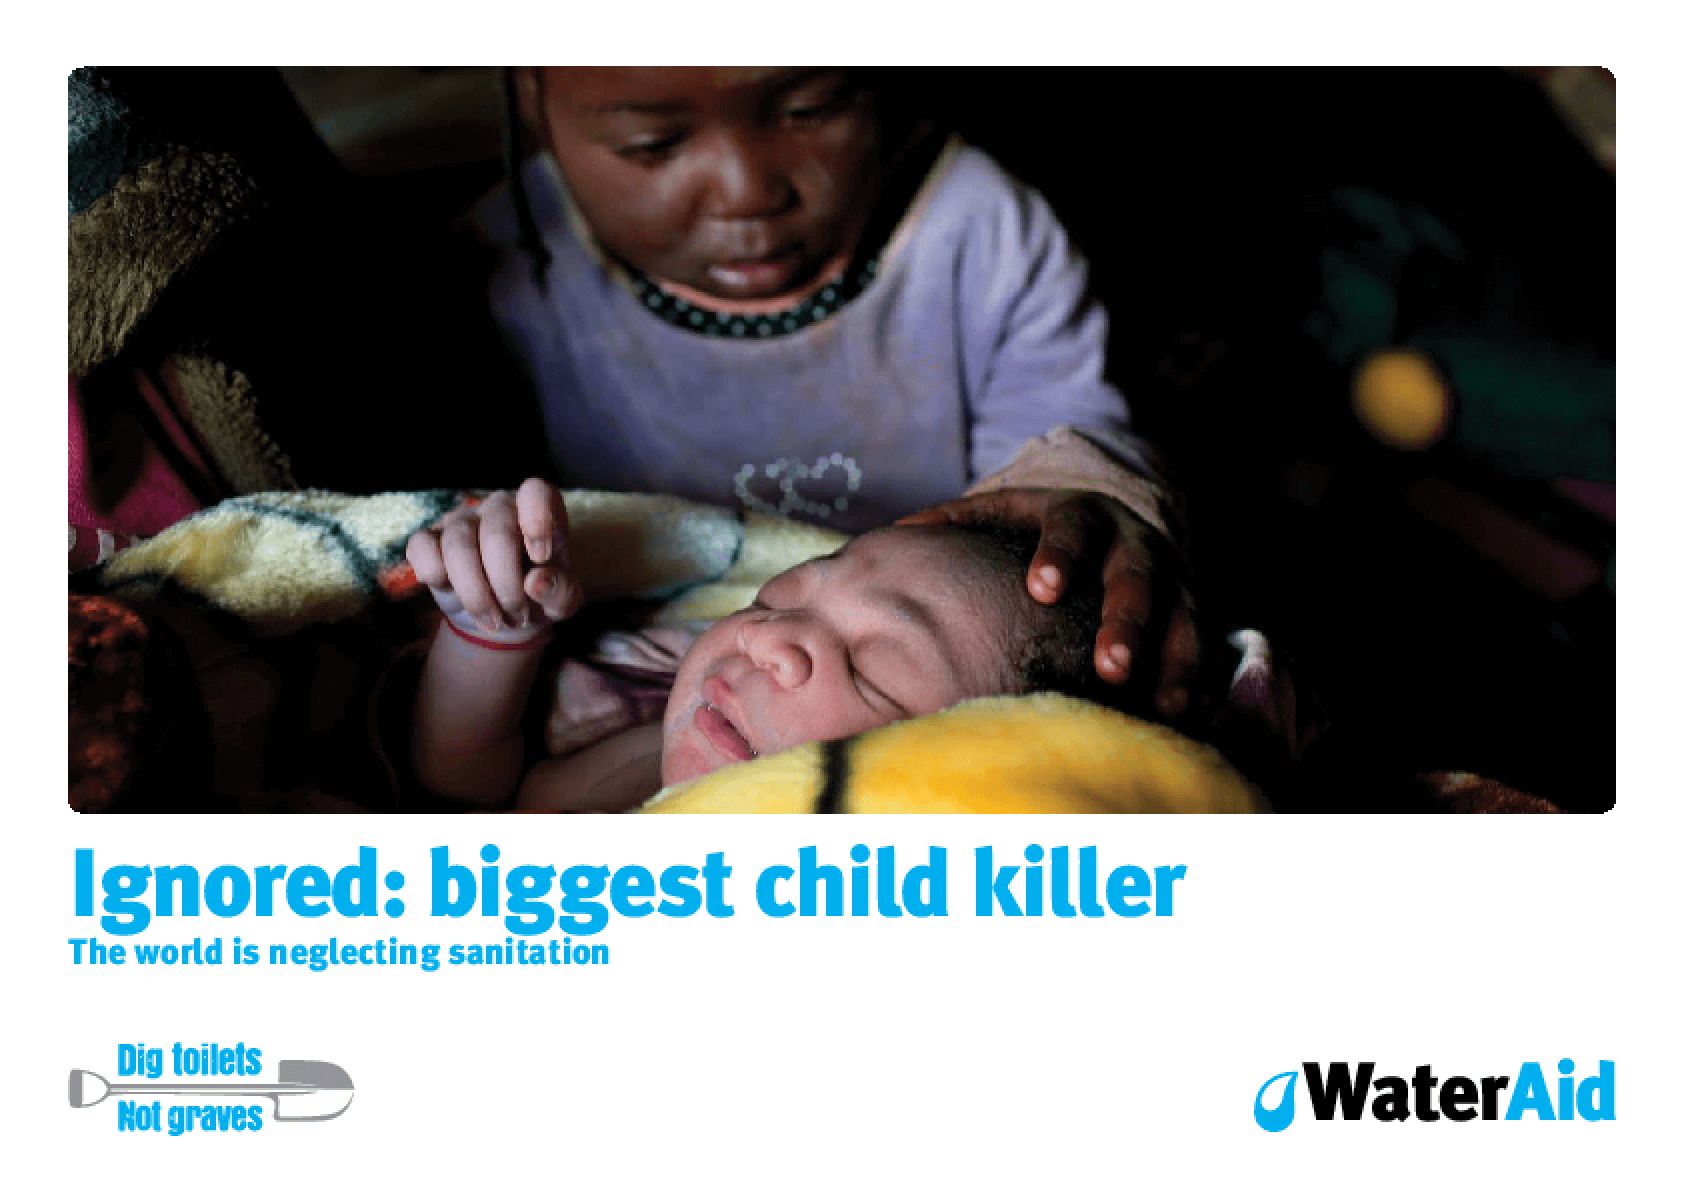 Ignored: Biggest Child Killer: The World Is Neglecting Sanitation